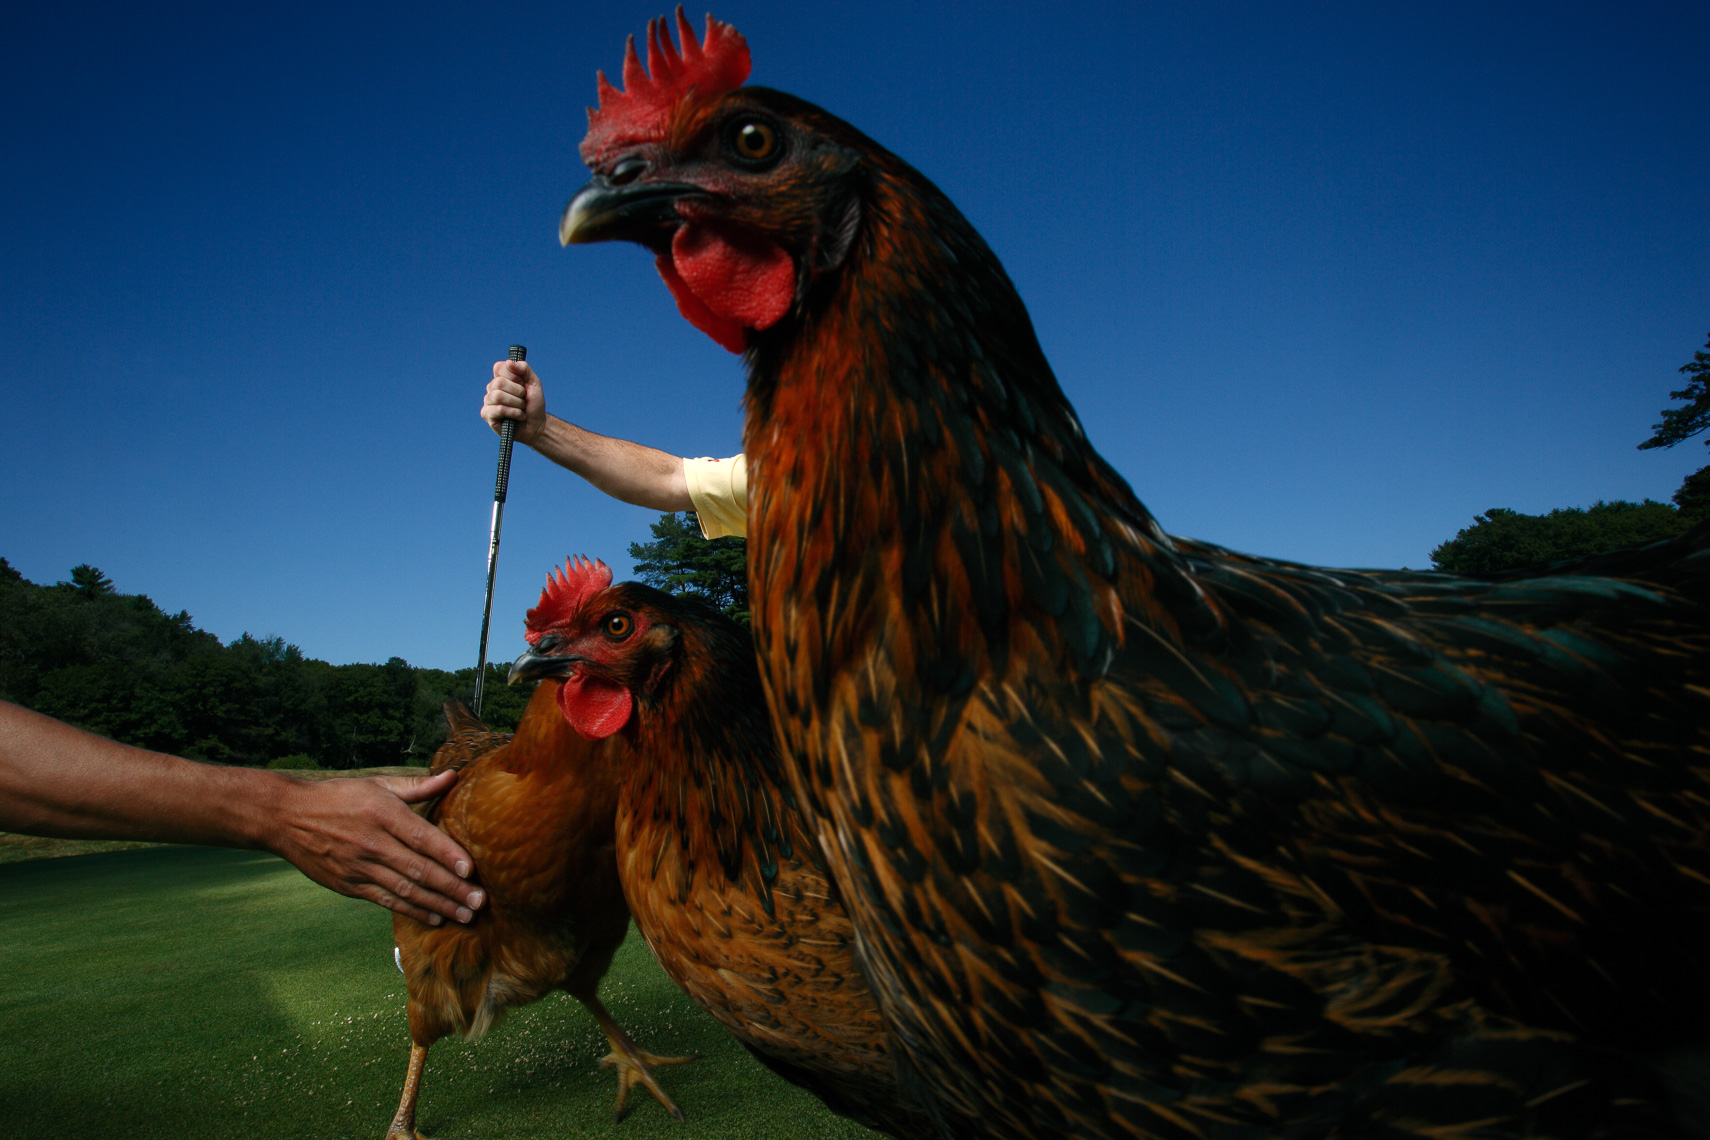 Cock-a-doodle-doo chicken fertilizer for Sports Illustrated • Jason Grow Photography